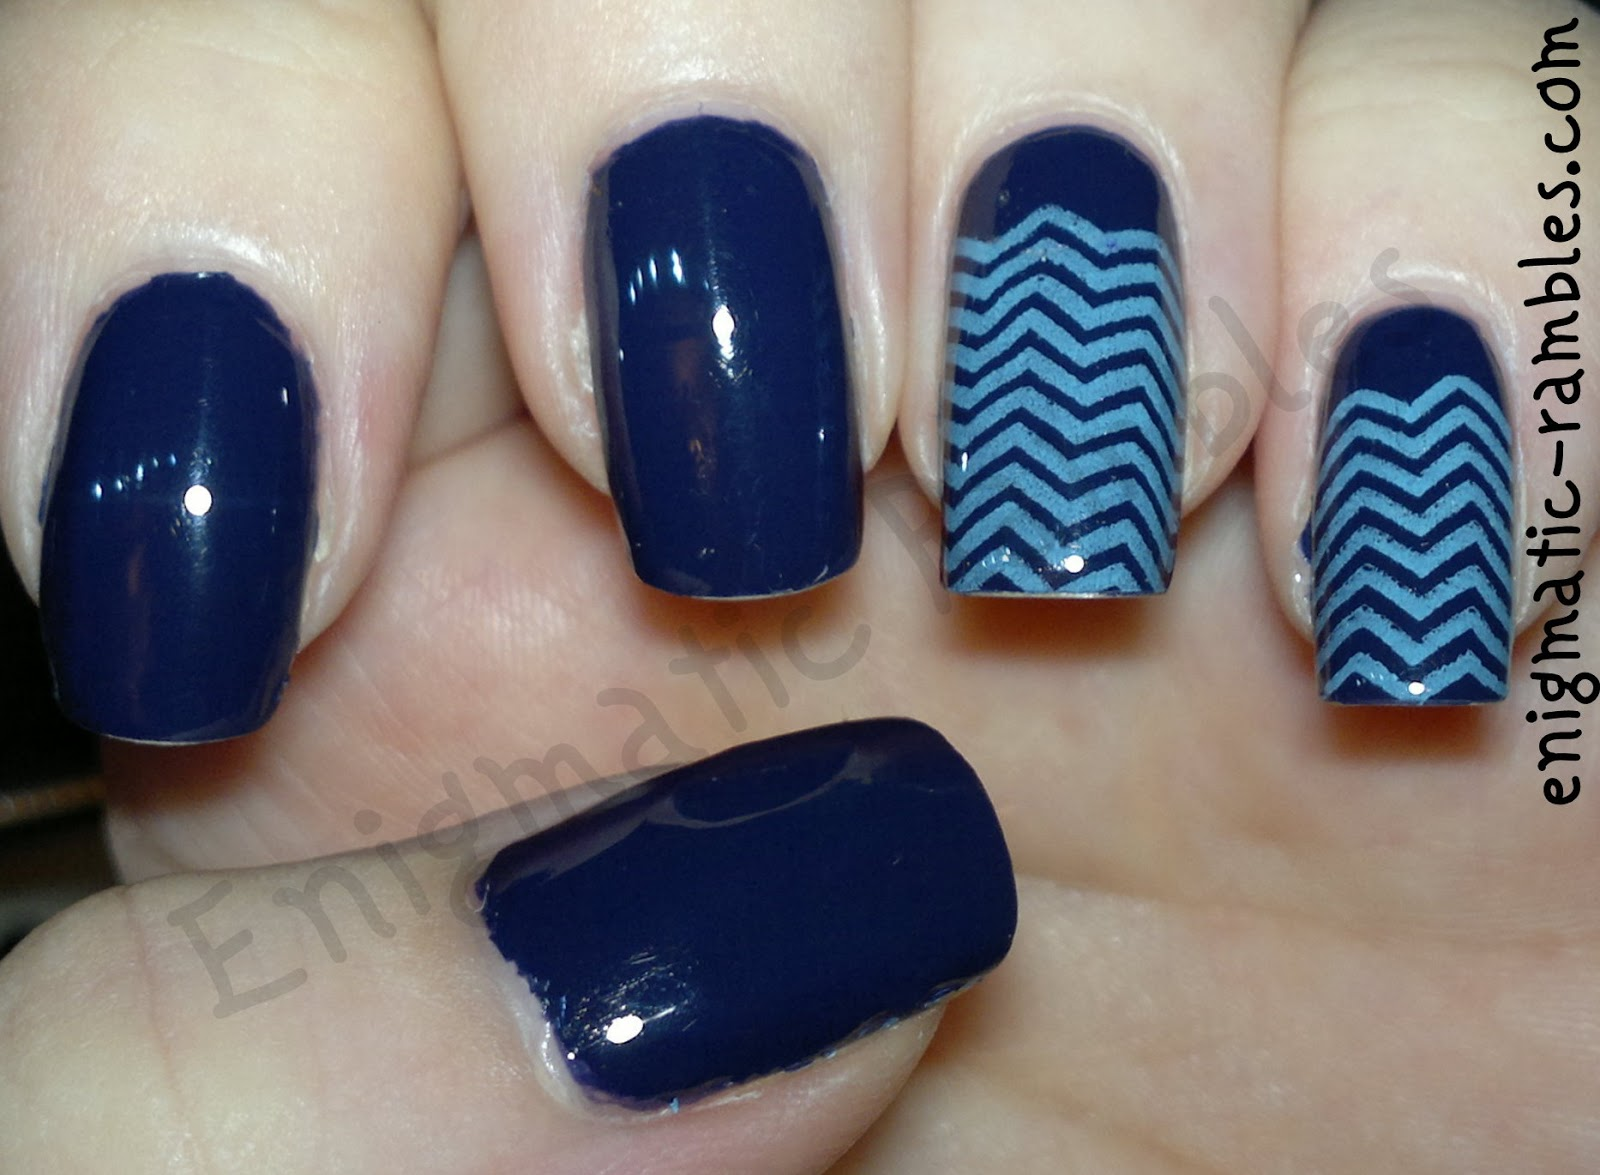 navy-blue-stamped-stamping-opi-road-house-maybelline-cool-blue-651-bundle-monster-bm201-201